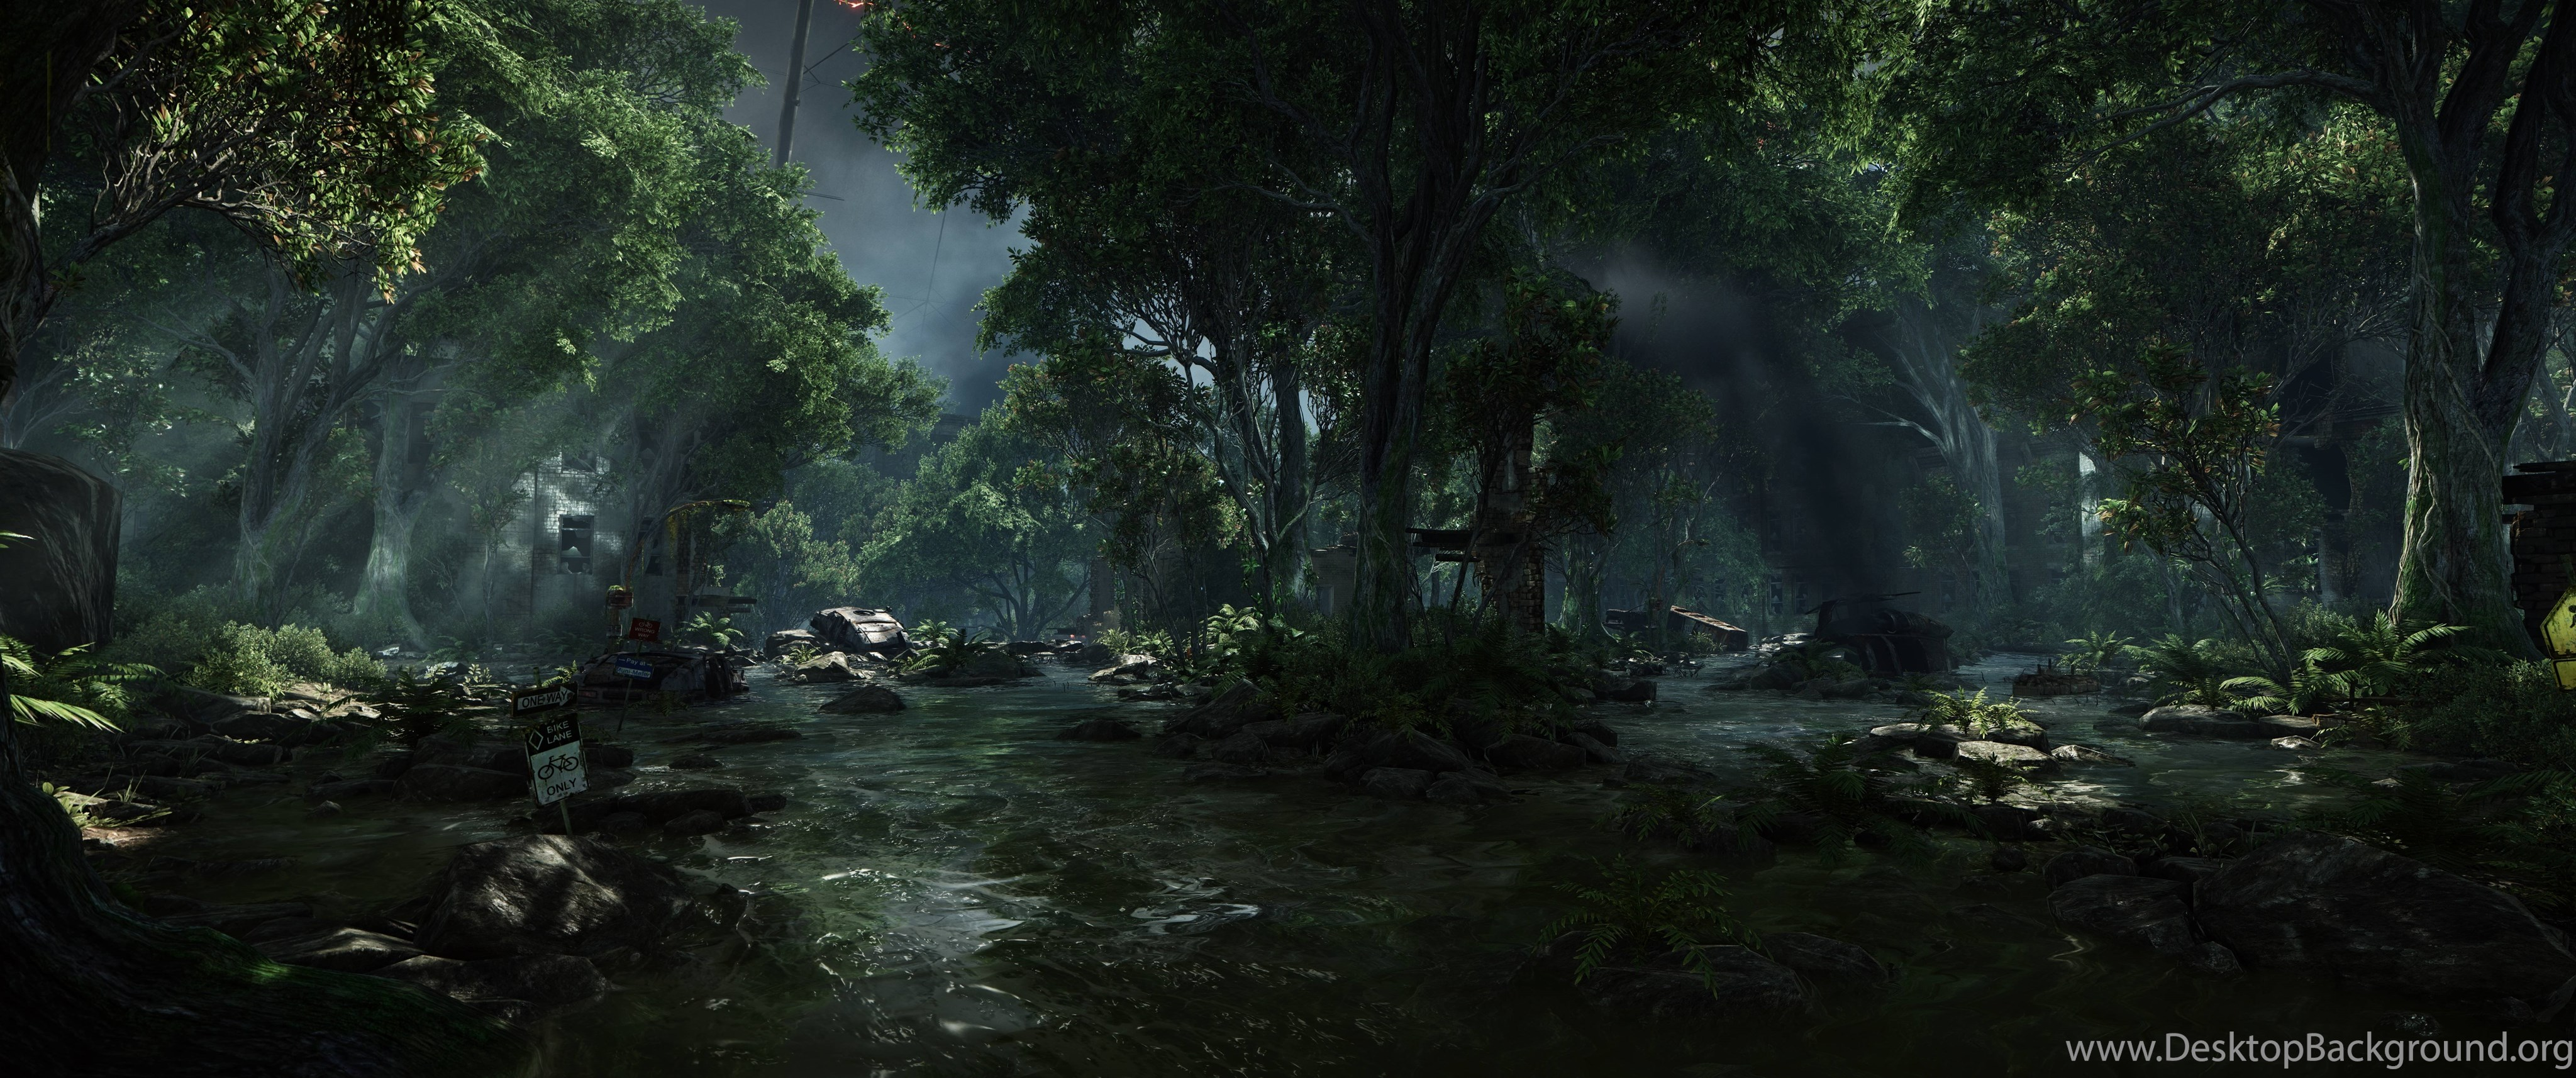 Hd Samsung Galaxy S6 Wallpaper Crysis 3 At 8k Resolution Pcmasterrace Desktop Background